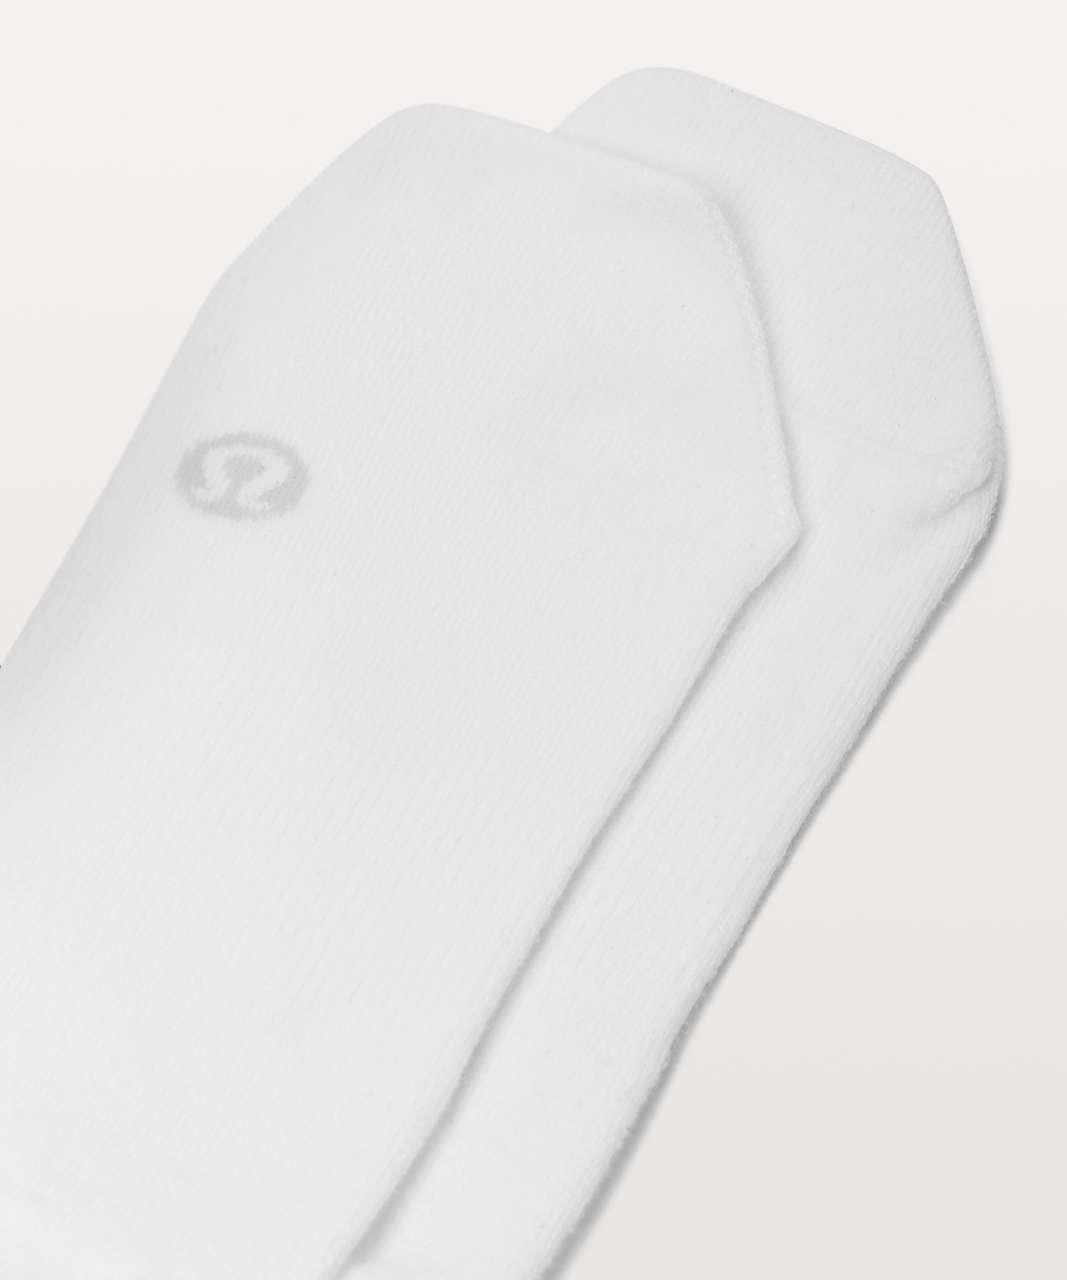 Lululemon All In A Day Sock - White